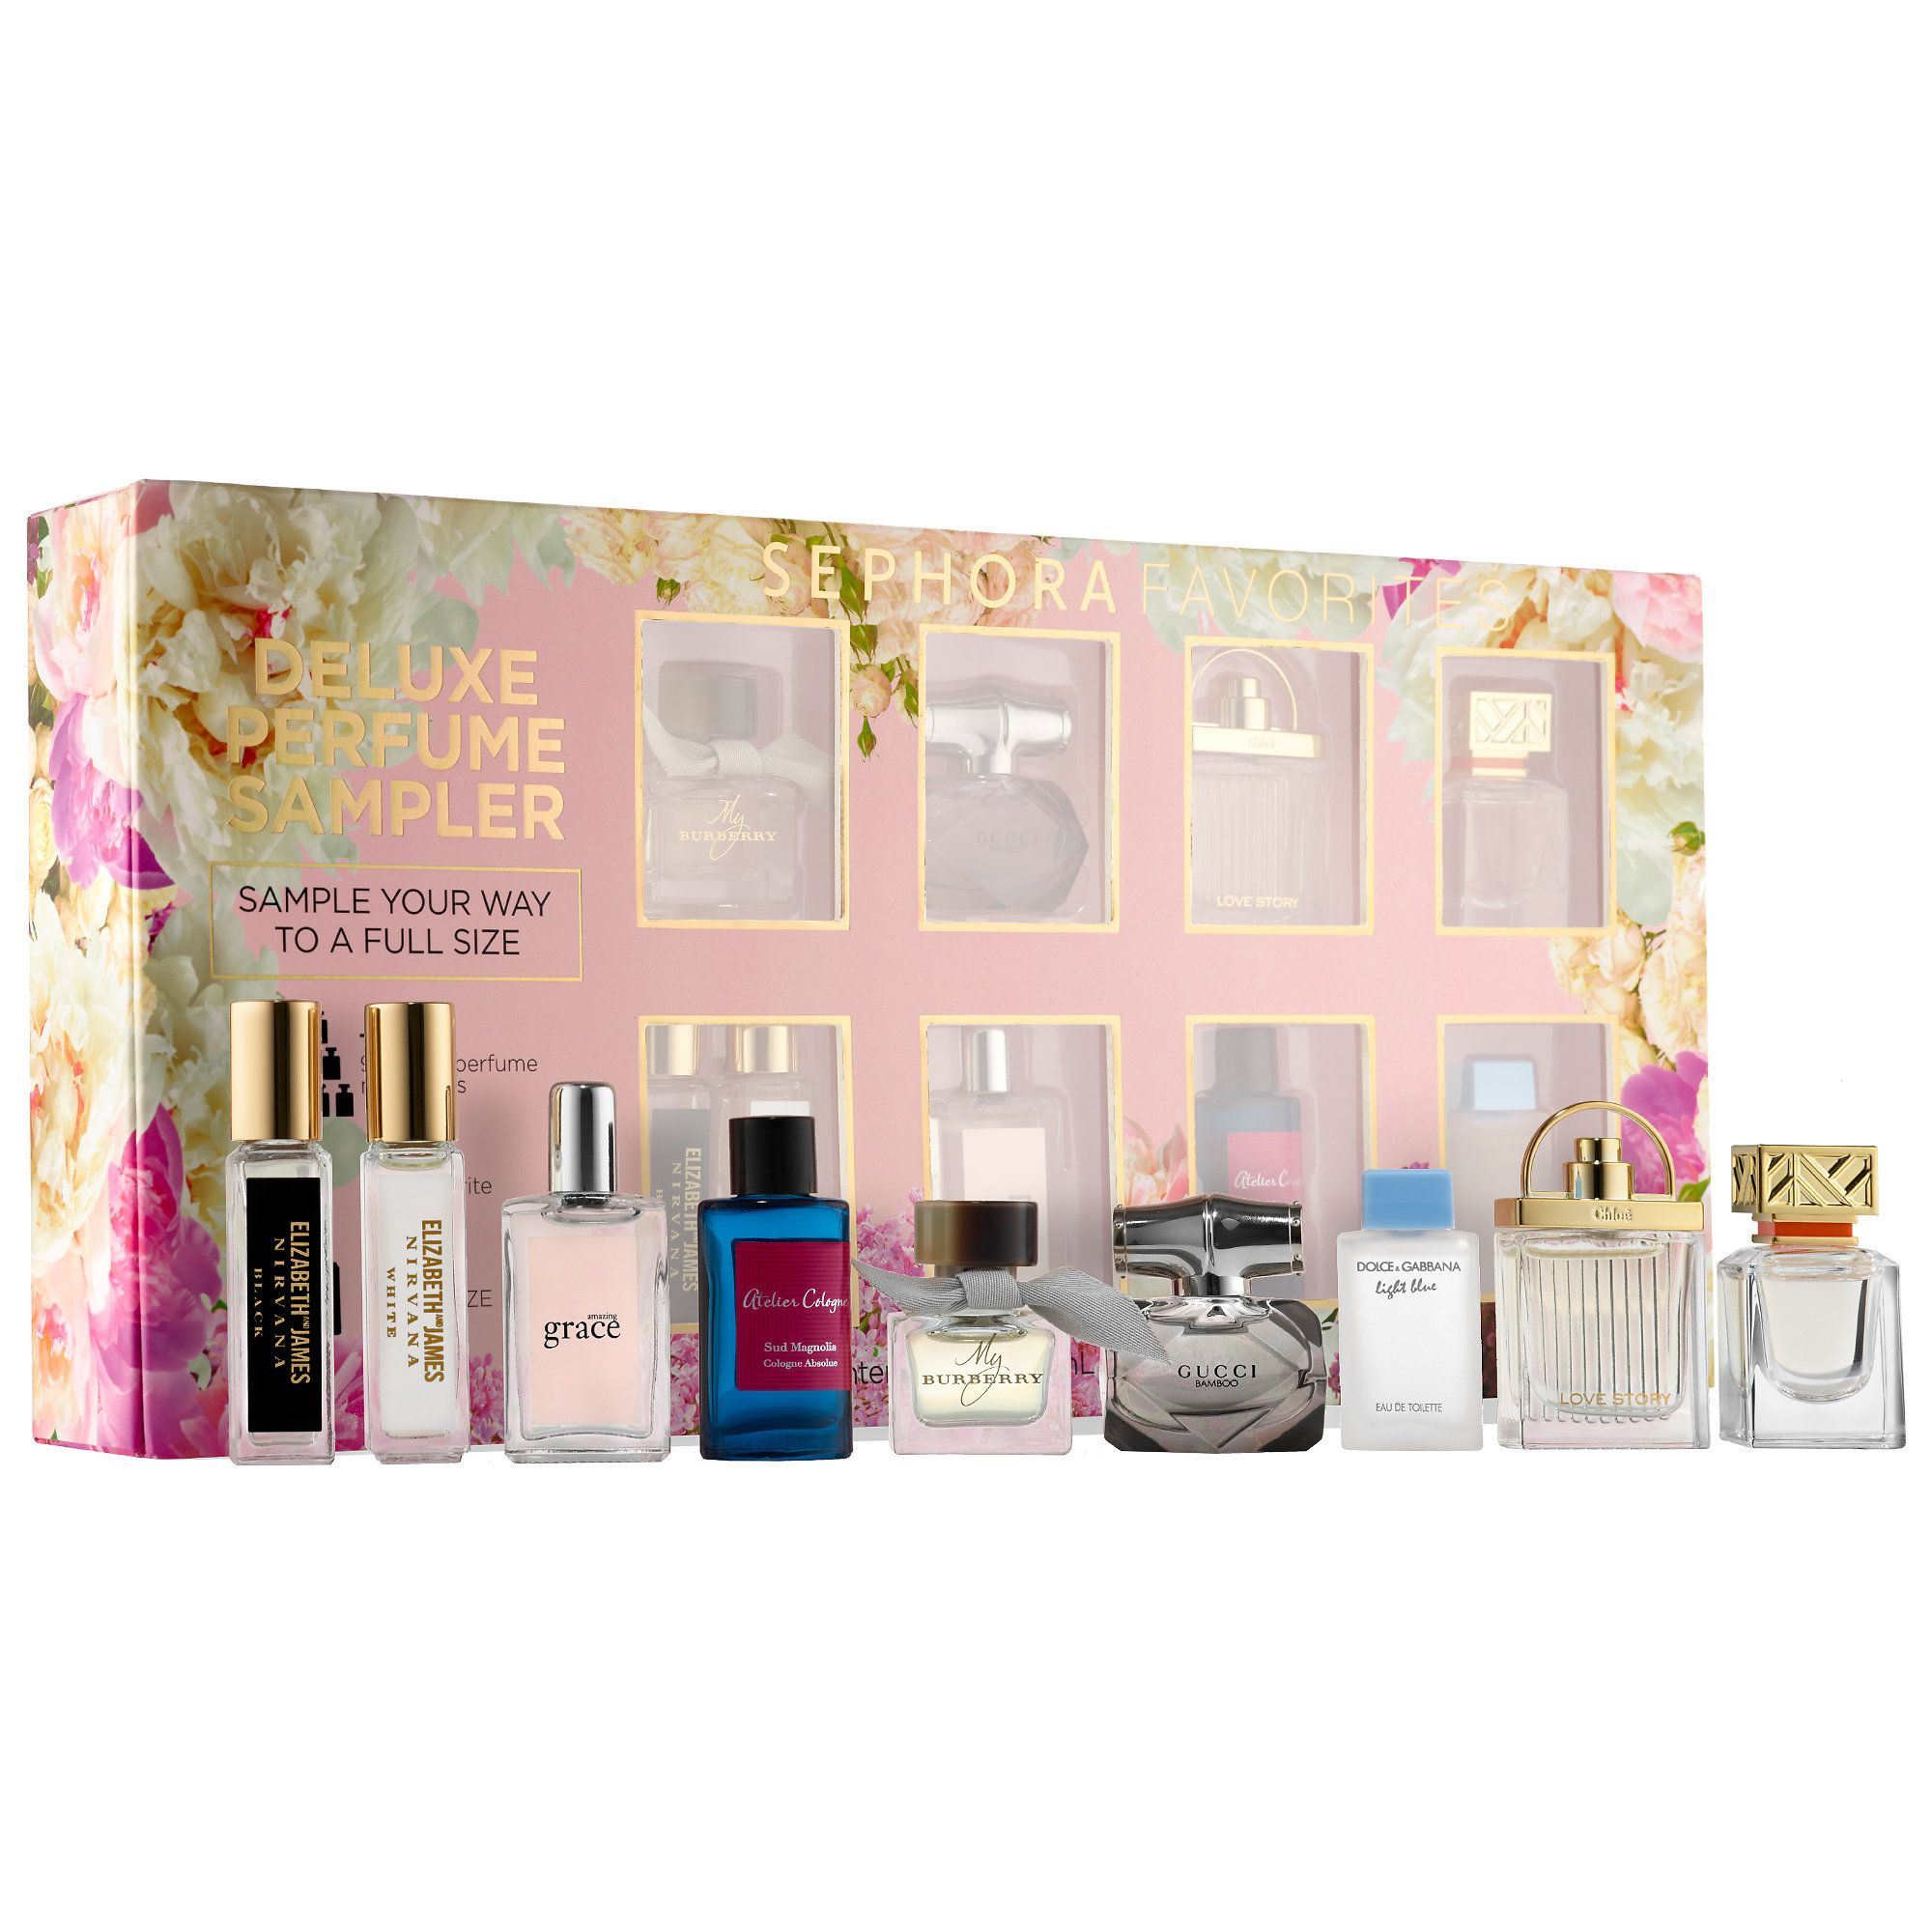 ea00f5814c91 Shop Sephora Favorites  Deluxe Perfume Sampler at Sephora. This box of nine fragrance  samples has a certificate for a full-size of your favorite.